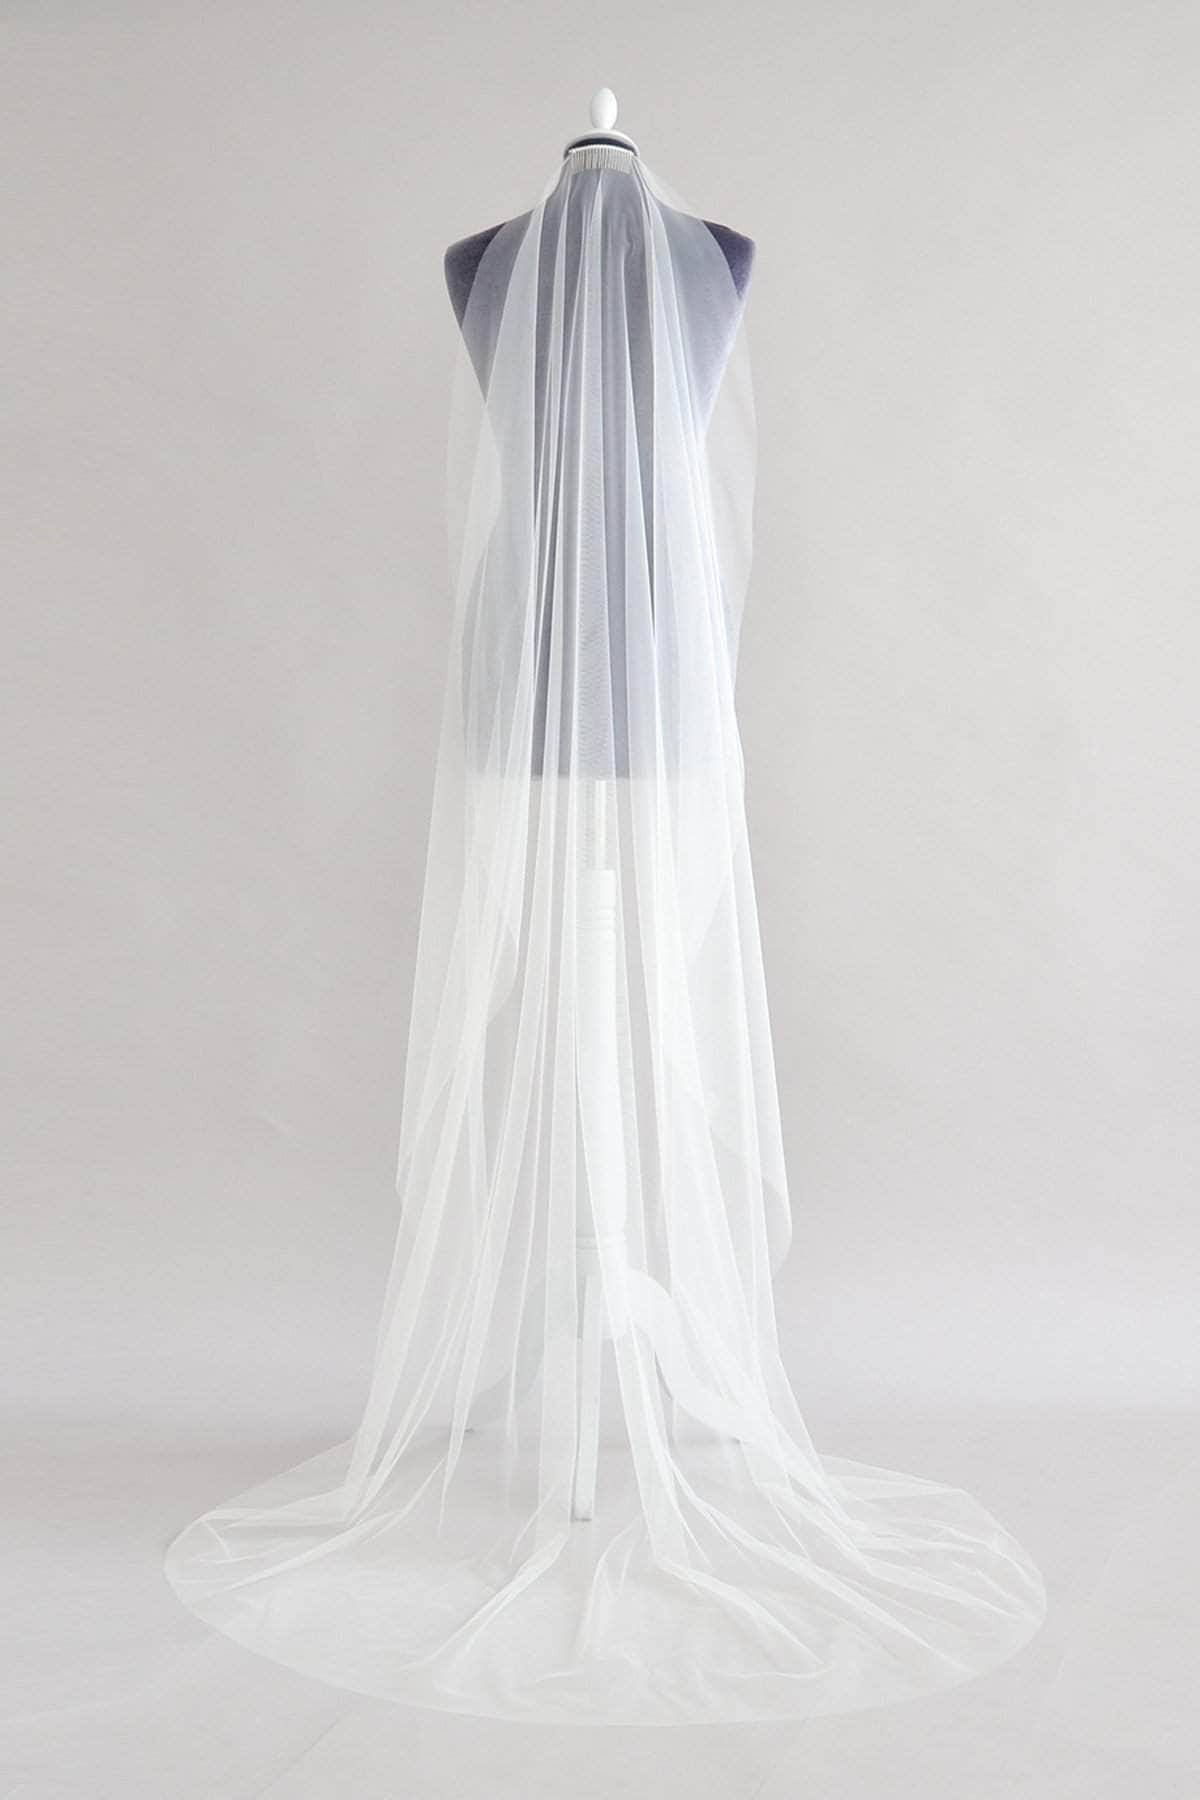 Wedding Veil Italian tulle barely there wedding veil - 'Celine'